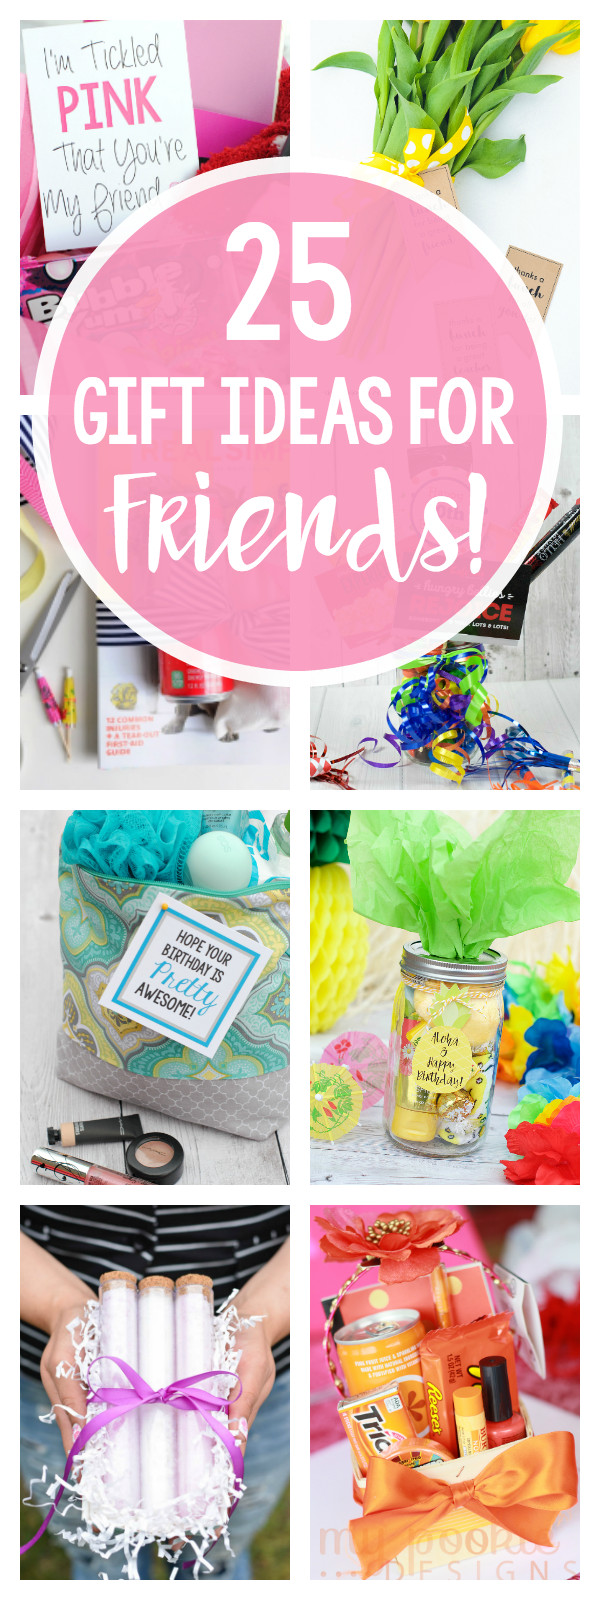 Cute Birthday Gift Ideas For Best Friend  25 Gifts Ideas for Friends – Fun Squared